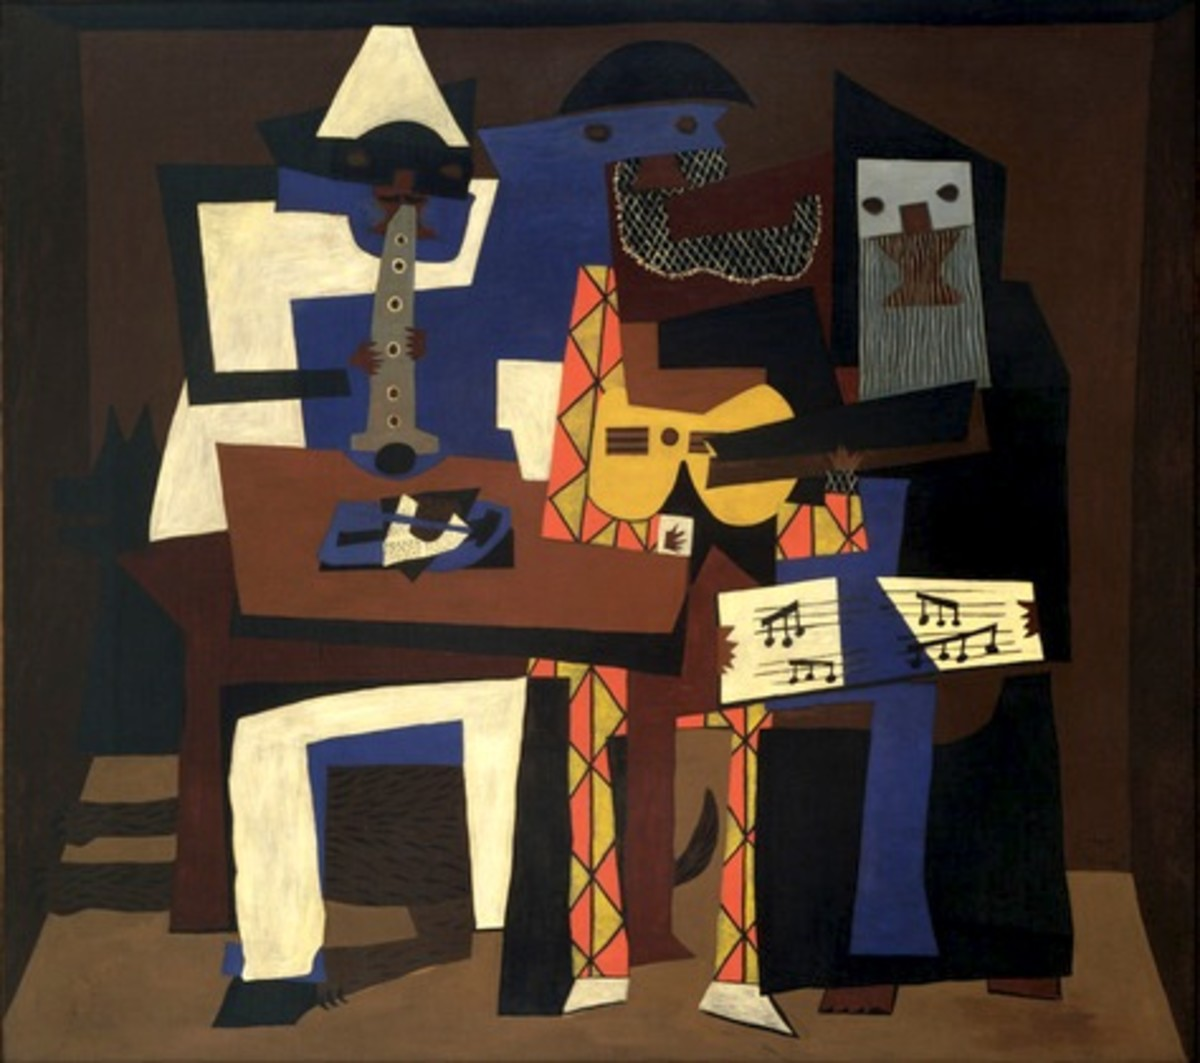 Pablo Picasso's Three Musicians (1921) — Publication of this low-resolution image is permissible under the Fair Use rule due to the historical significance of the painting.